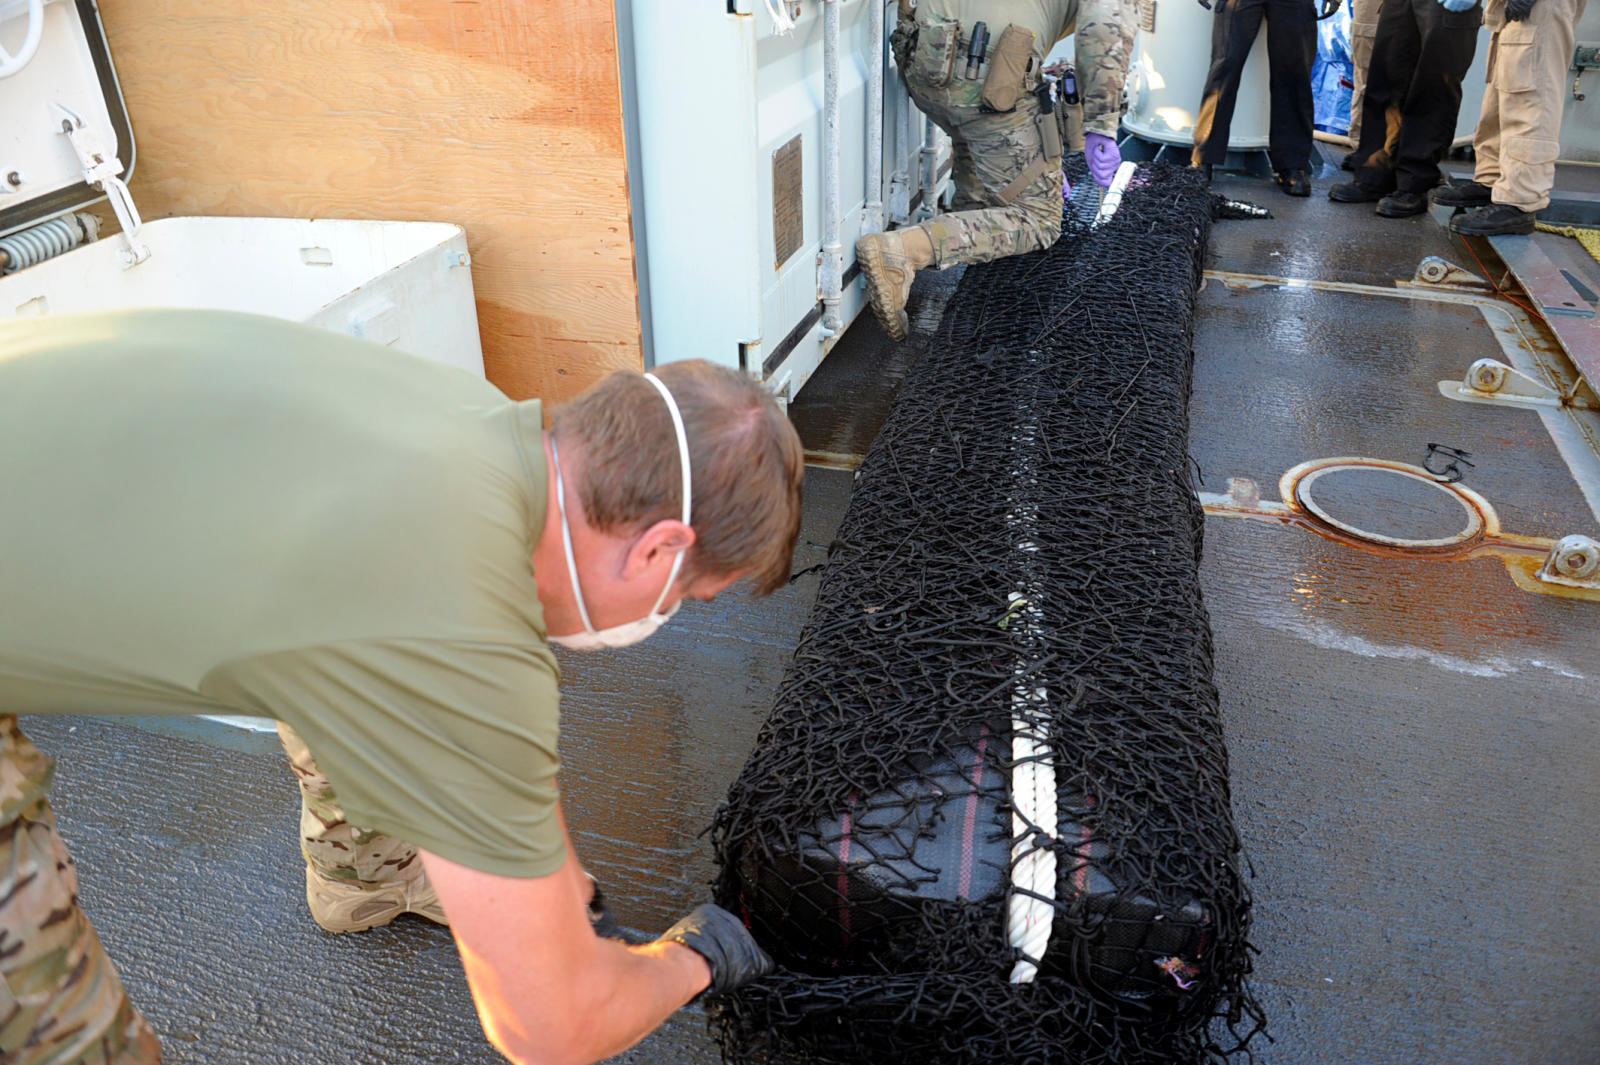 Two members of the United States Coast Guard cut the netting away from a large bale of cocaine on the deck of HMCS Whitehorse, part of the 1,500 kg of cocaine seized on April 5, 2018 during Operation CARIBBE. Photo: MARPAC Public AffairsXC052-2018-0001-111~Deux membres la garde c?ti?re des ?tats Unis se trouvant sur le pont du NCSM Whitehorse coupent le filet entourant un grand ballot de coca?ne faisant partie des 1 500 kg de coca?ne qui ont ?t? saisis le 5 avril 2018, dans le cadre de l?op?ration CARIBBE. Photo : Affaires publiques des FMAR(P)XC052-2018-0001-111